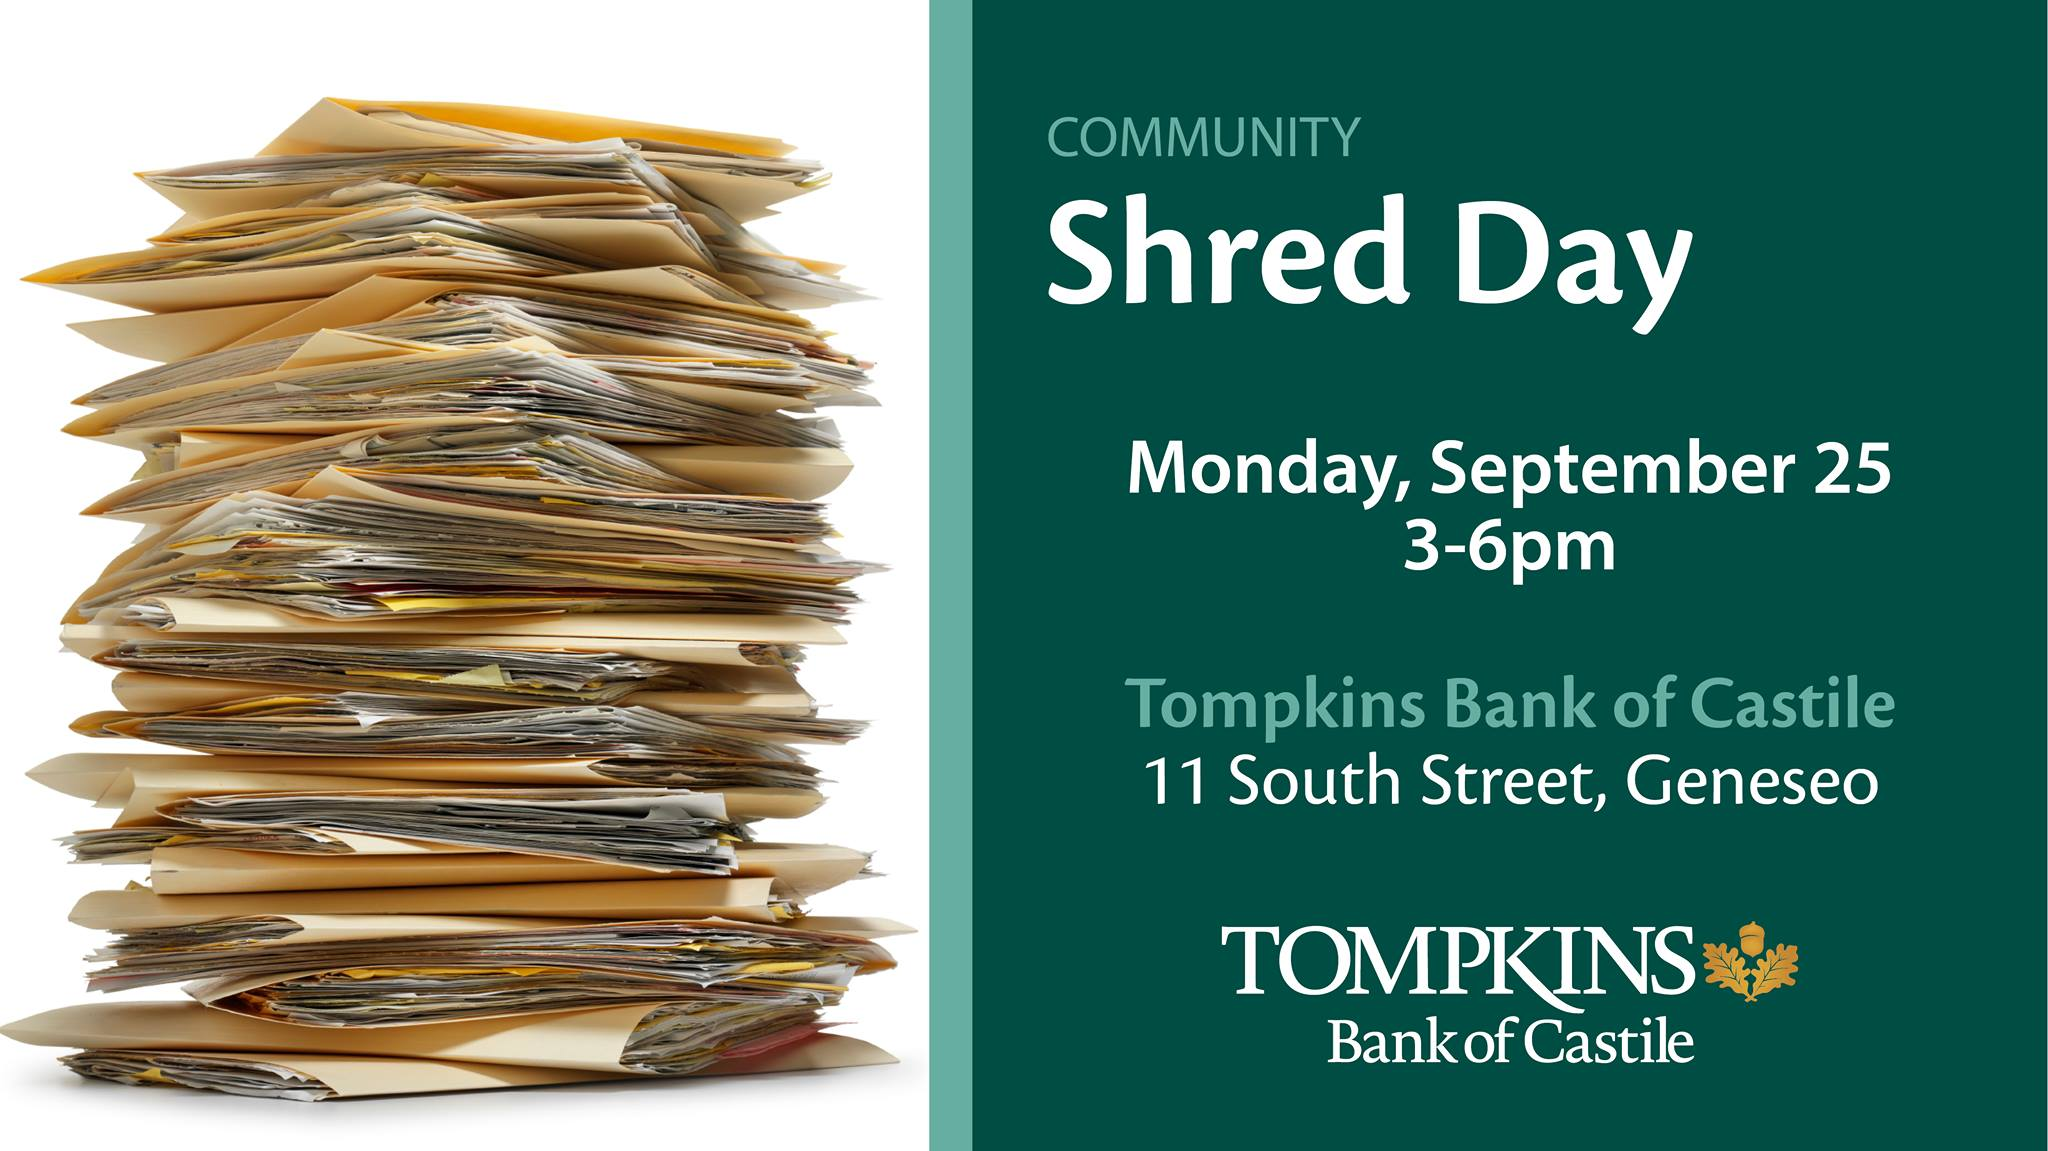 Bank of Castile Community Shred Day